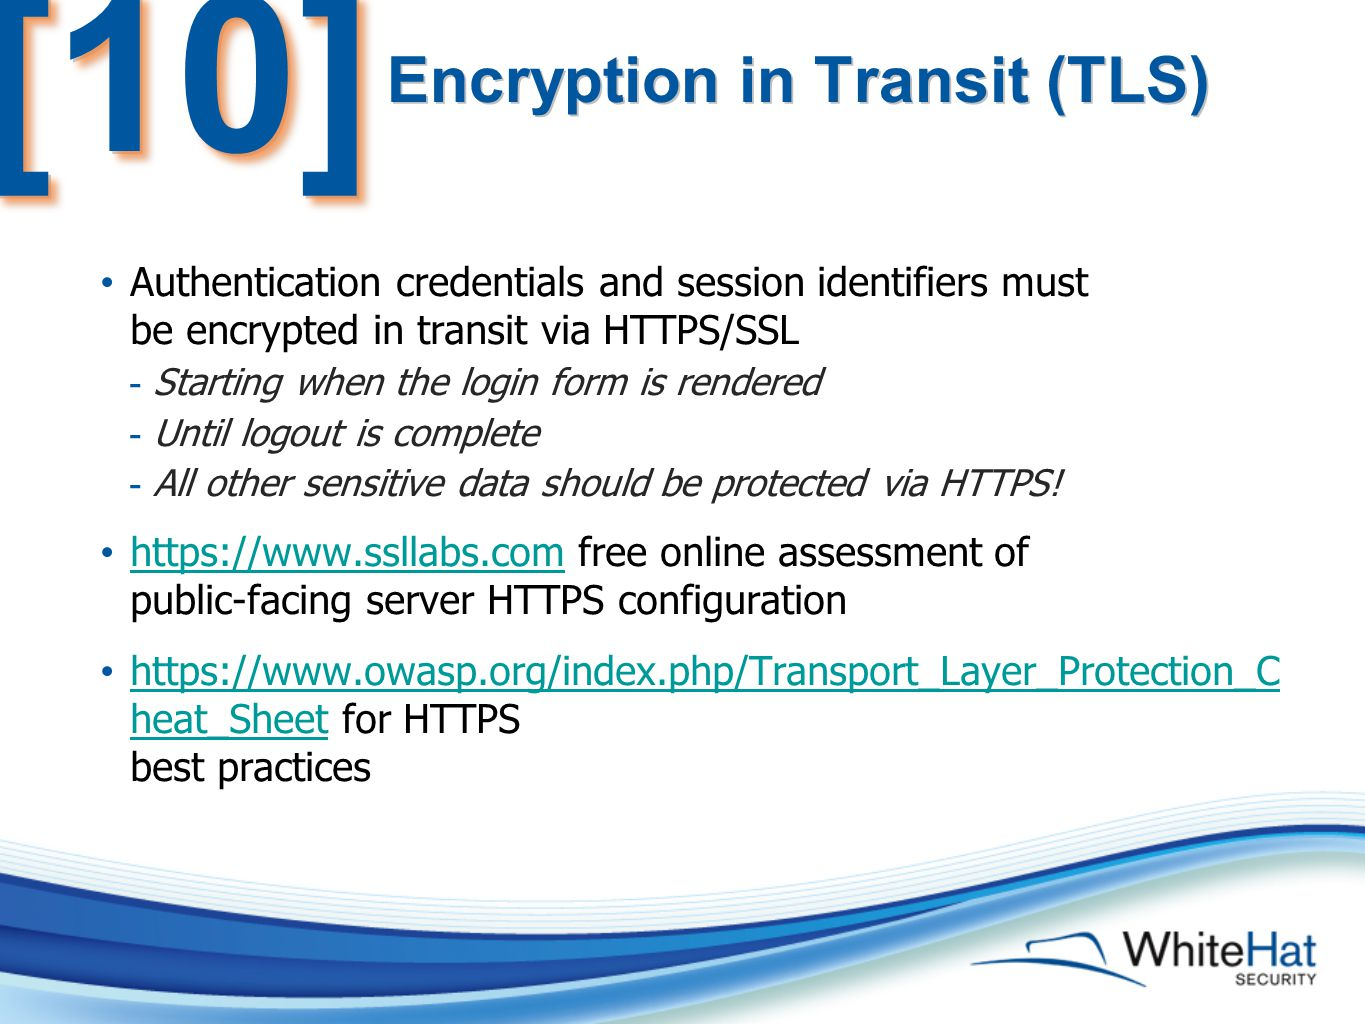 Encryption in Transit (TLS) Authentication credentials and session identifiers must be encrypted in transit via HTTPS/SSL - Starting when the login form is rendered - Until logout is complete - All other sensitive data should be protected via HTTPS.